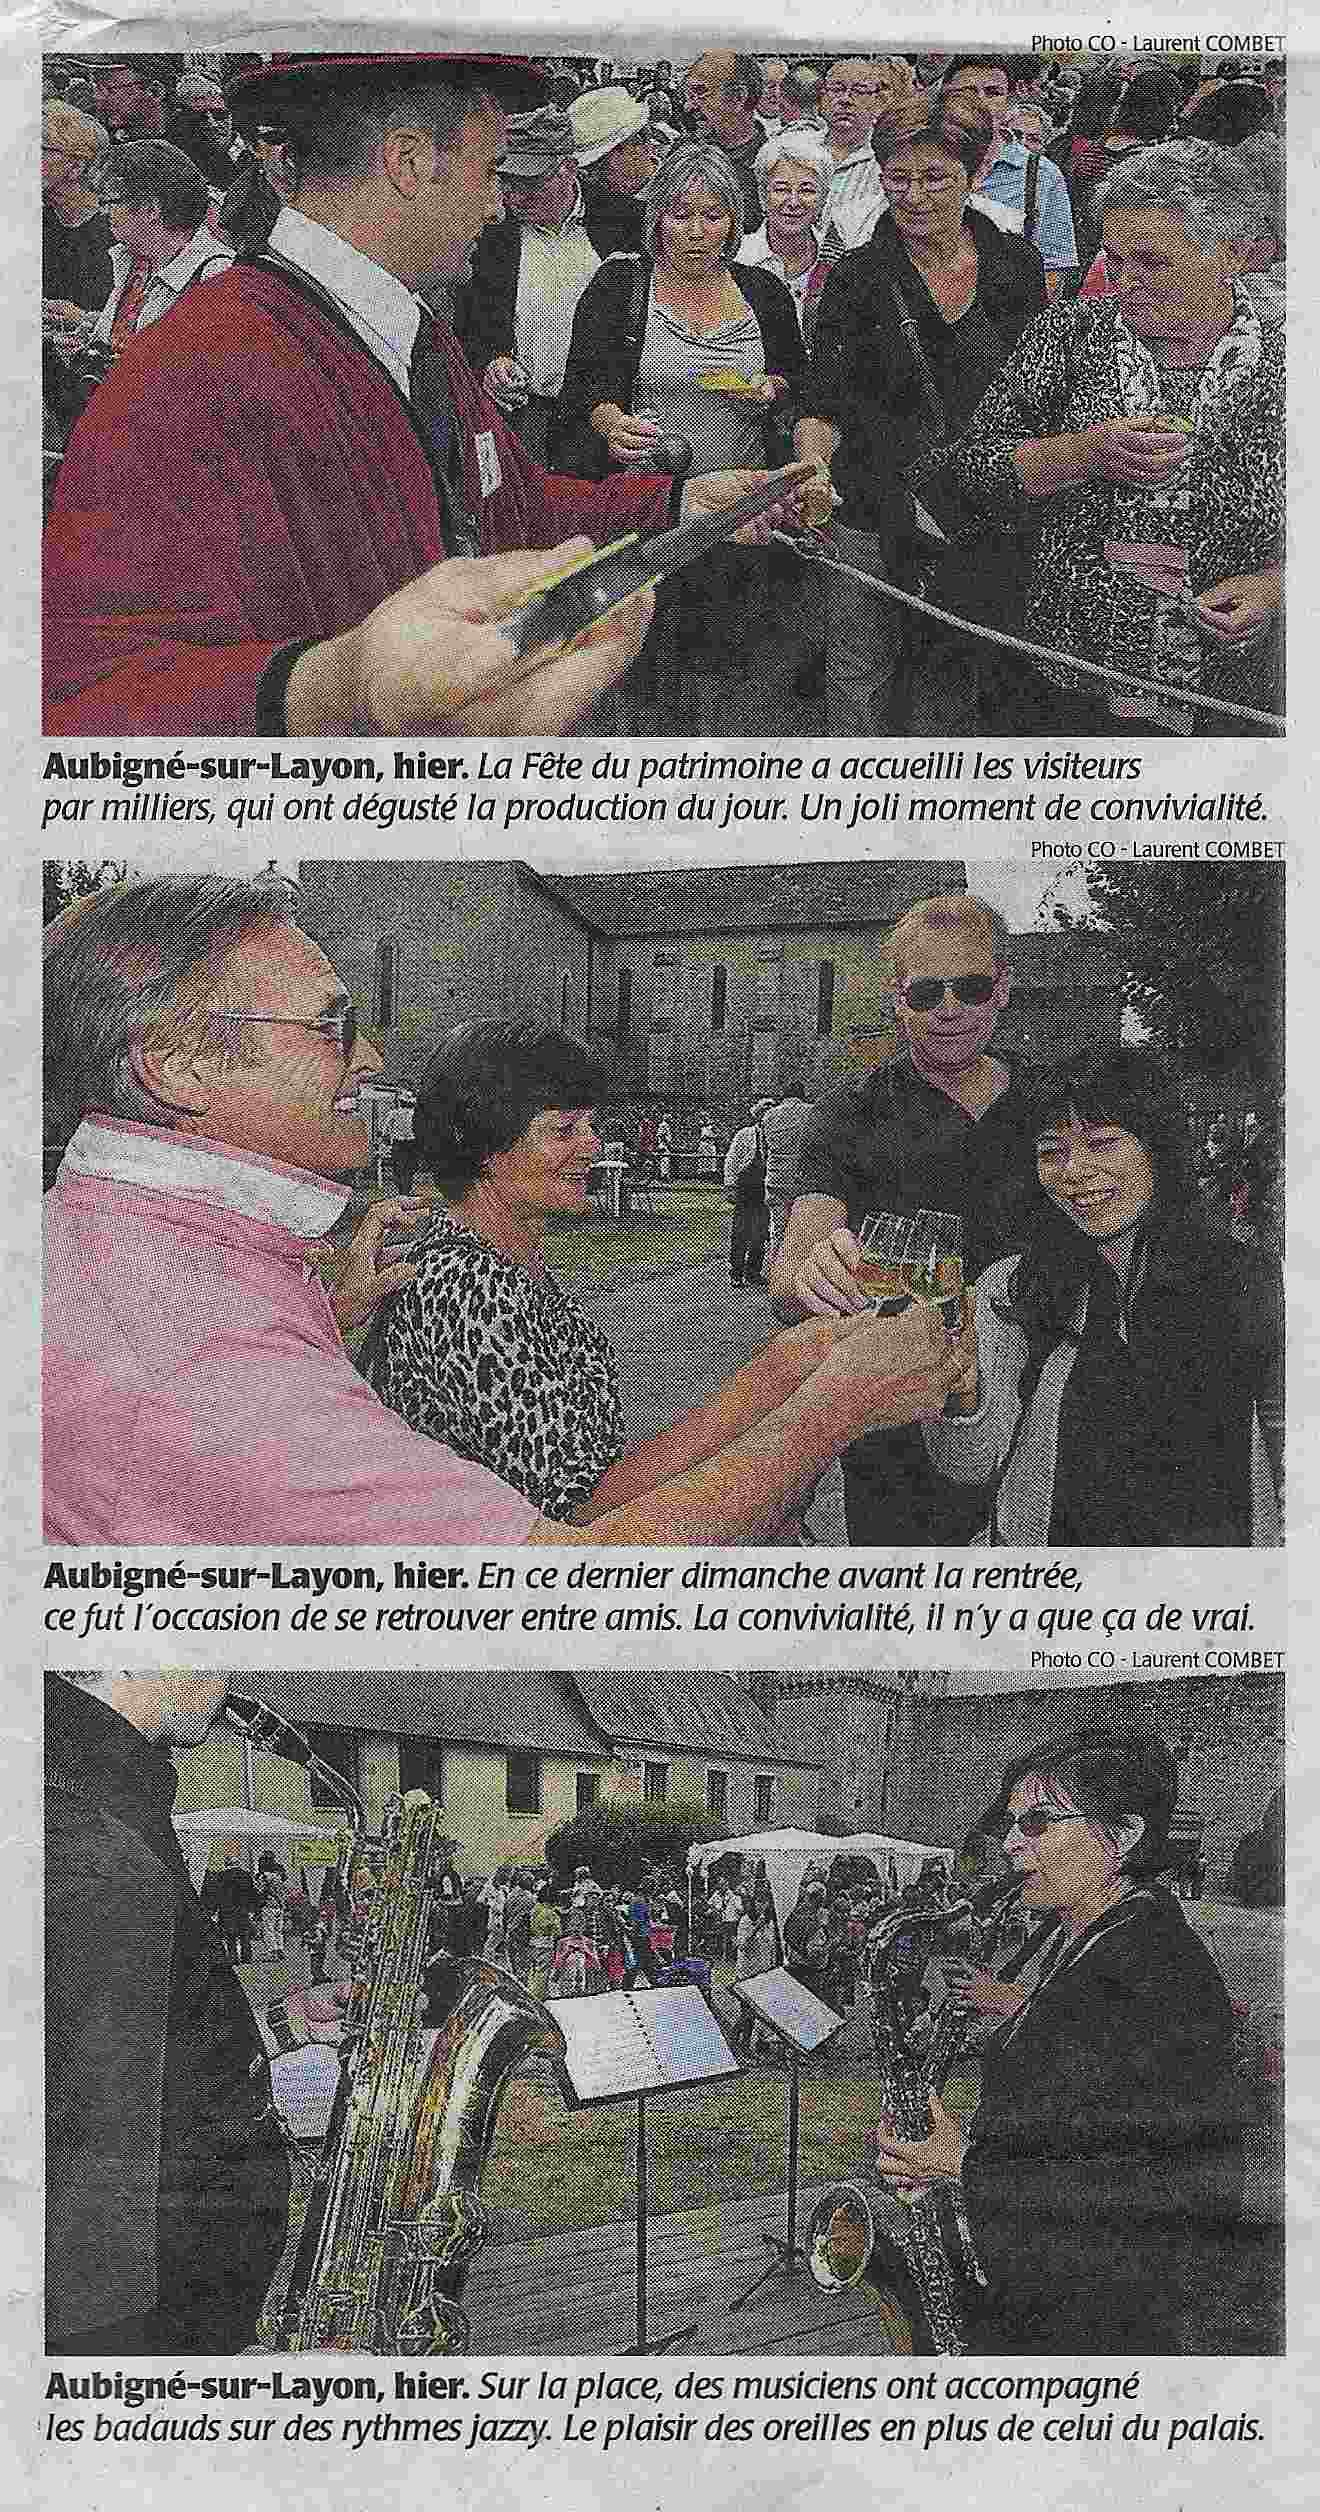 Courrier ouest 03-09-2012 b-2